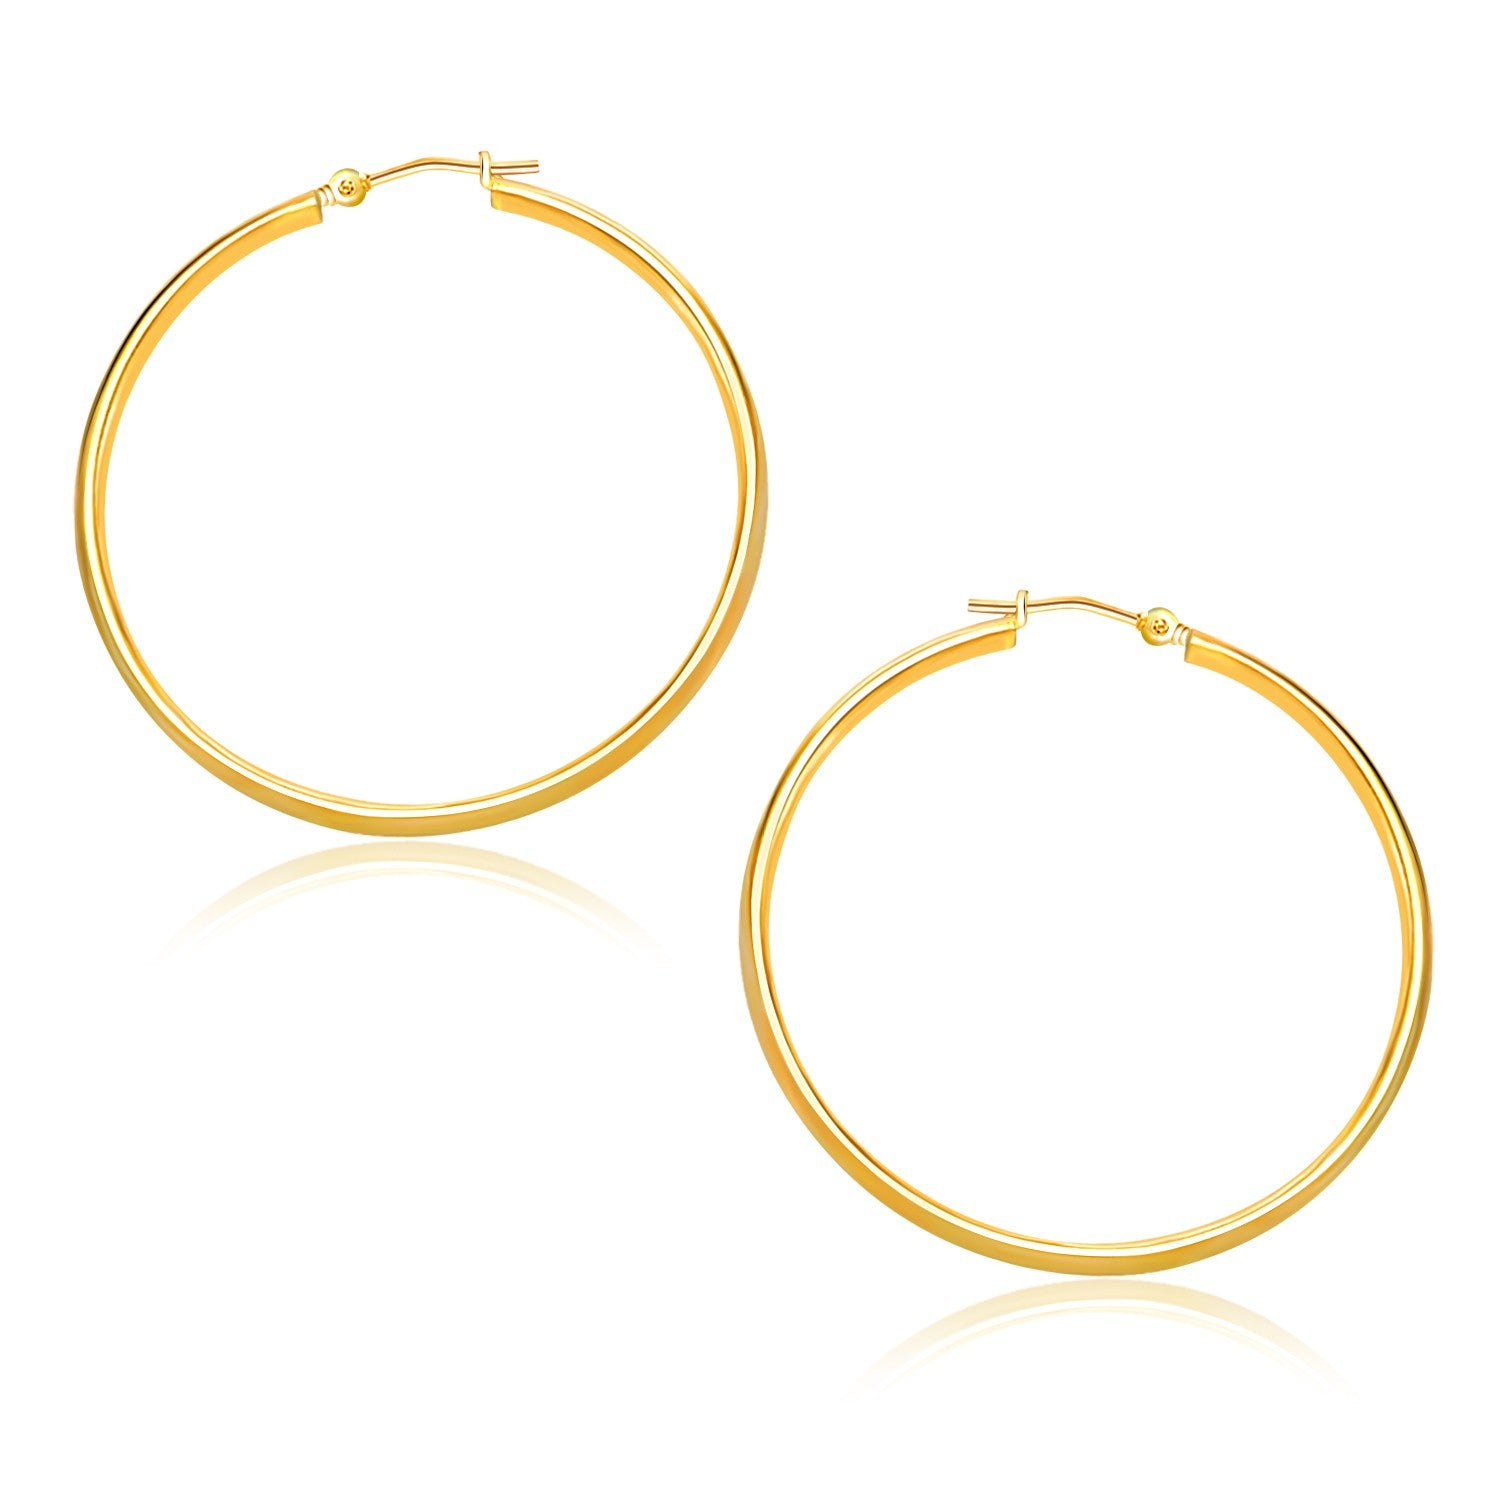 14K Yellow Gold Polished Hoop Earrings (30mm)